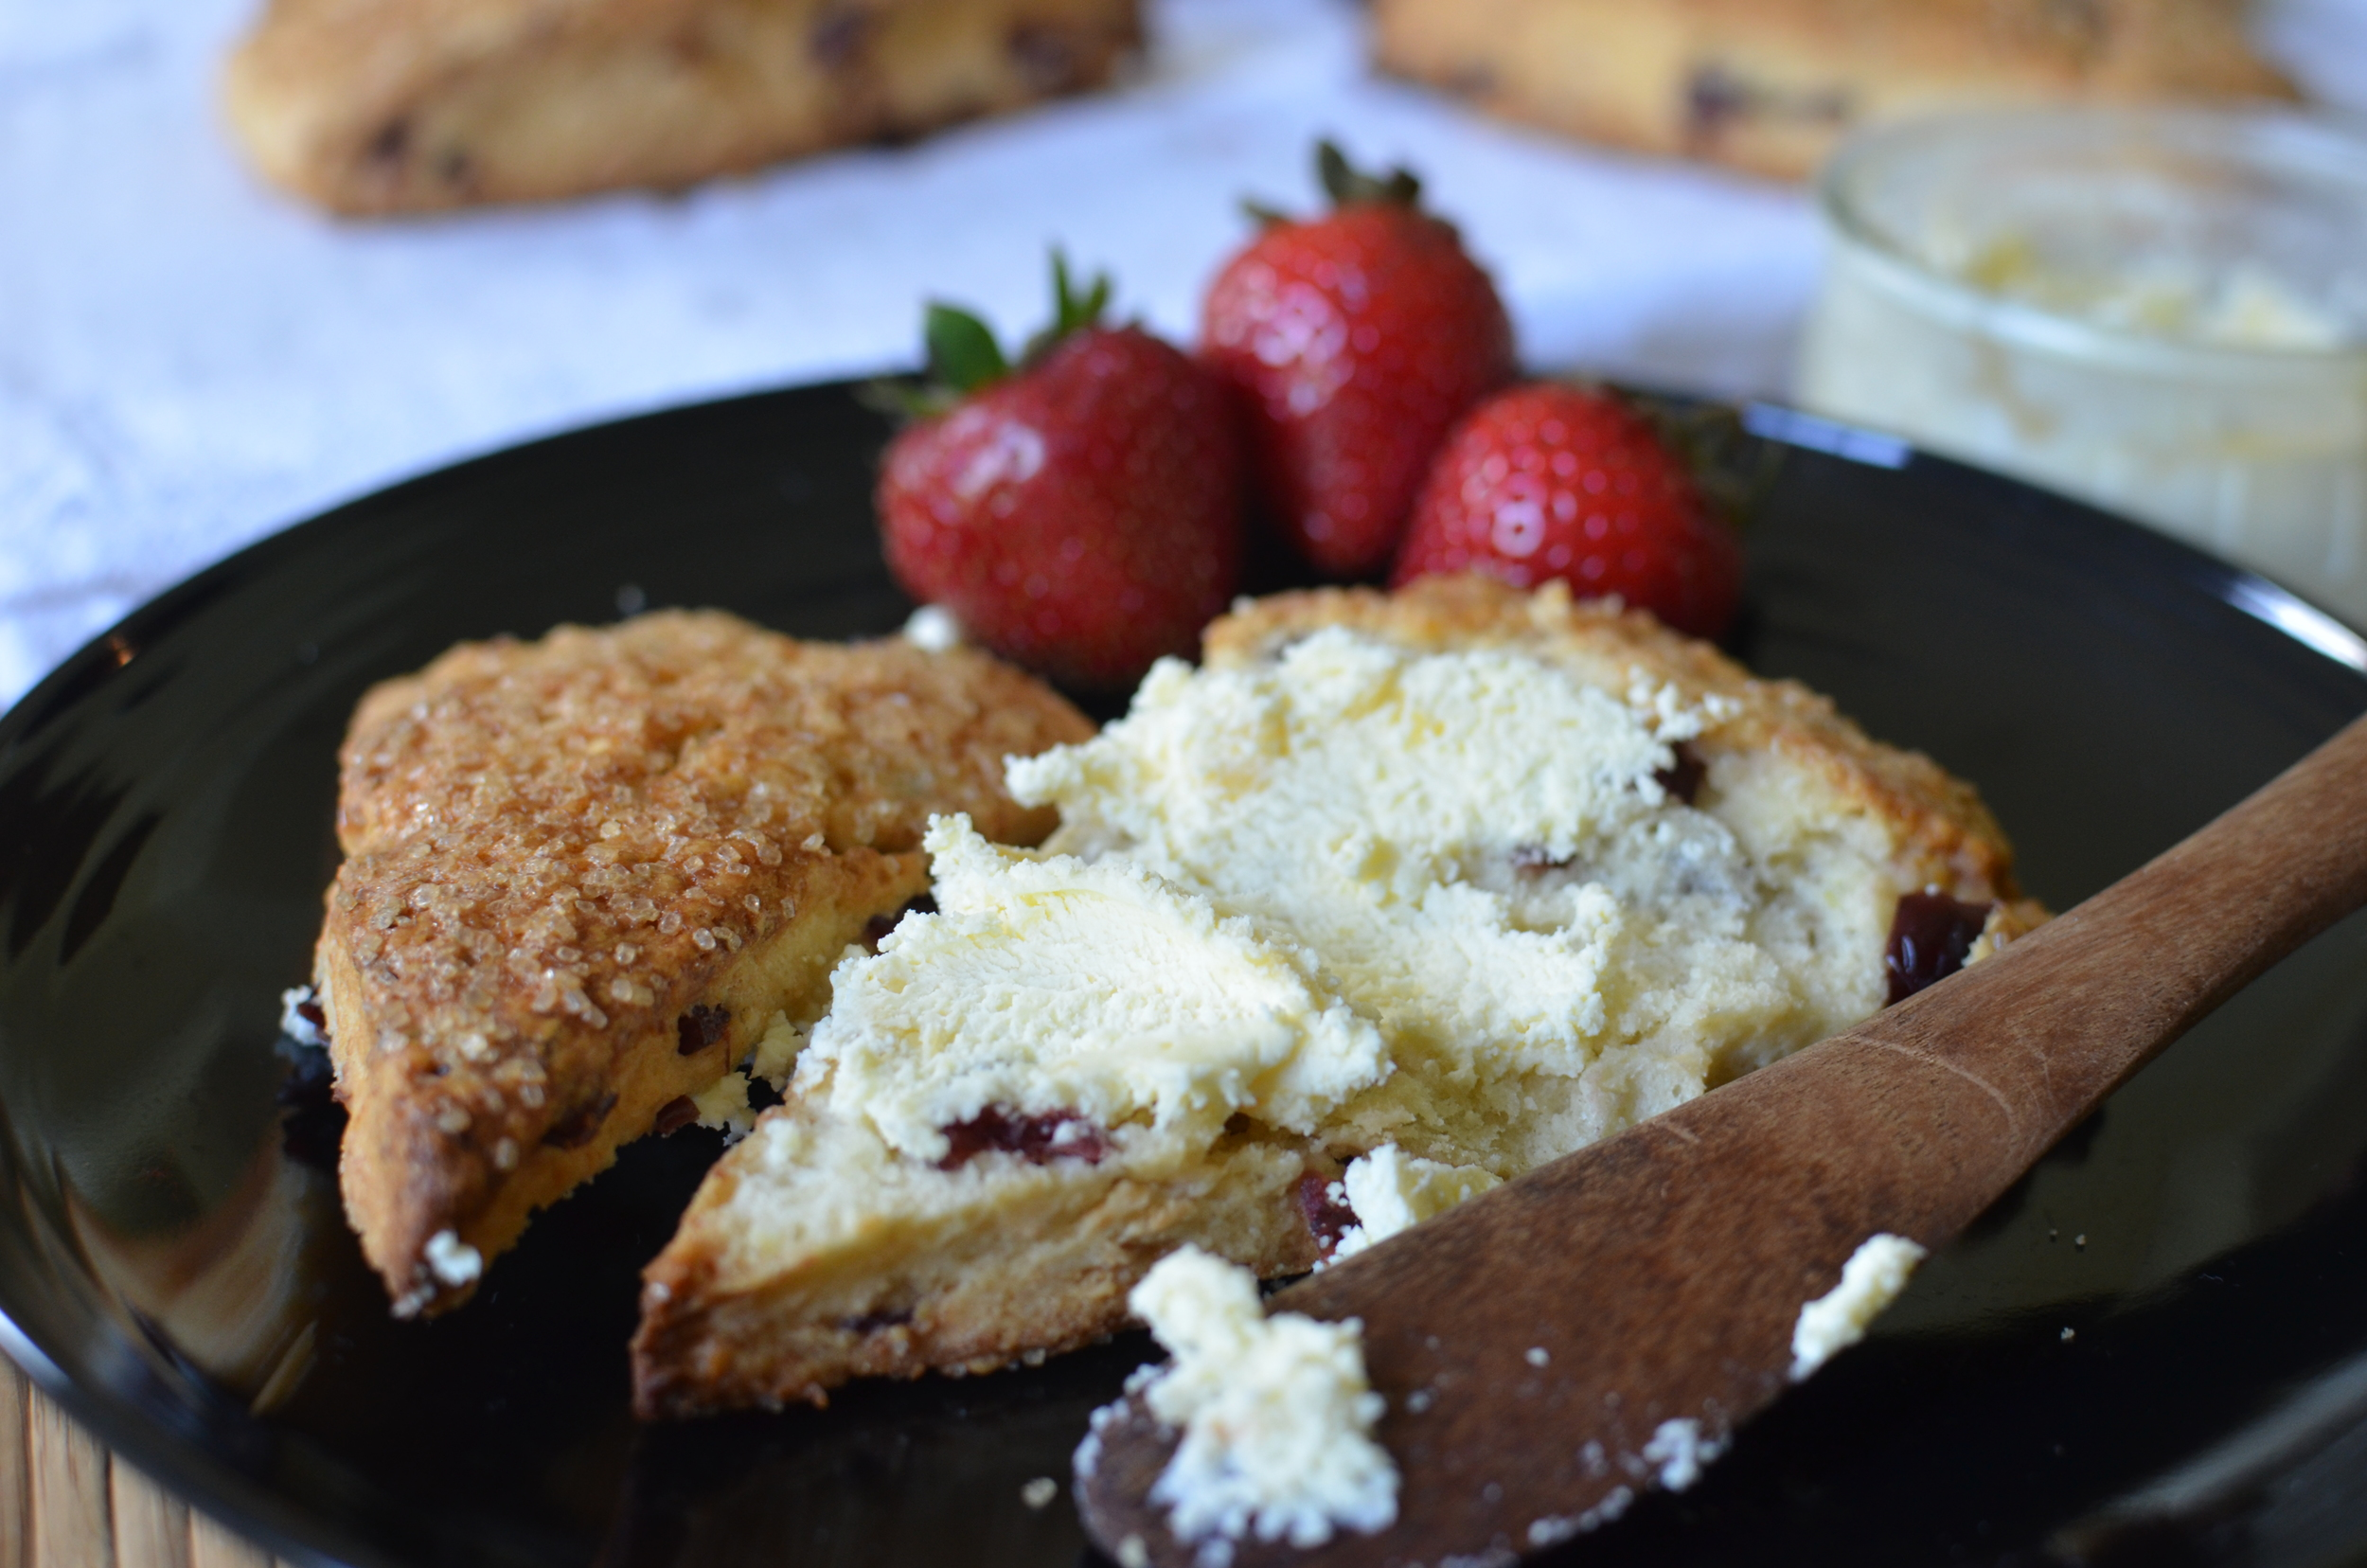 Flaky Cream Cheese Scones with Dried Cranberries - ButterYum